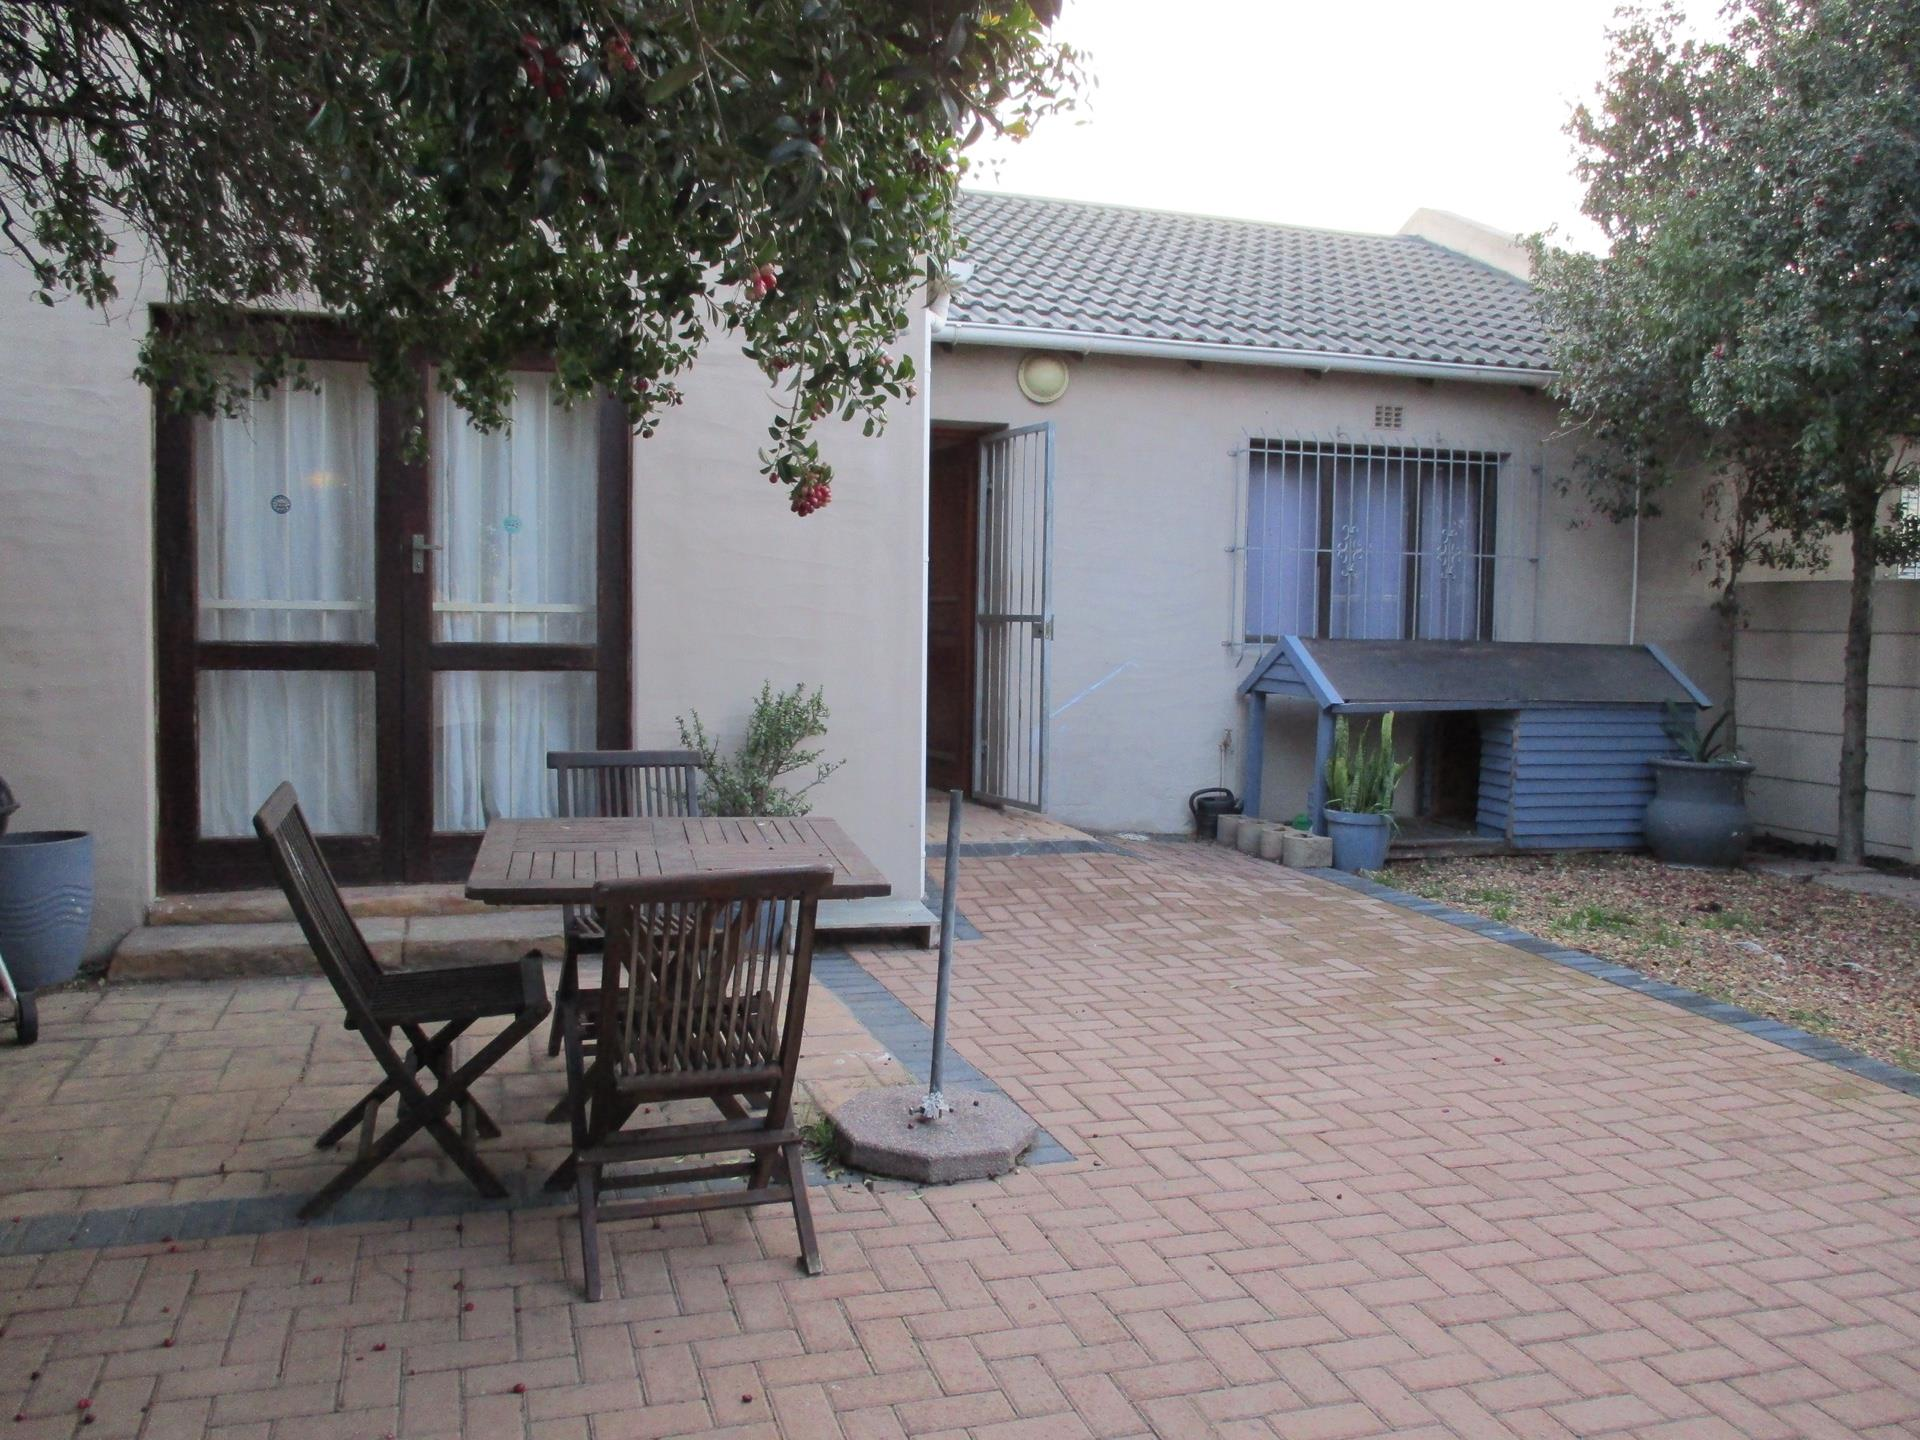 2 Bedroom House For Sale in Edgemead